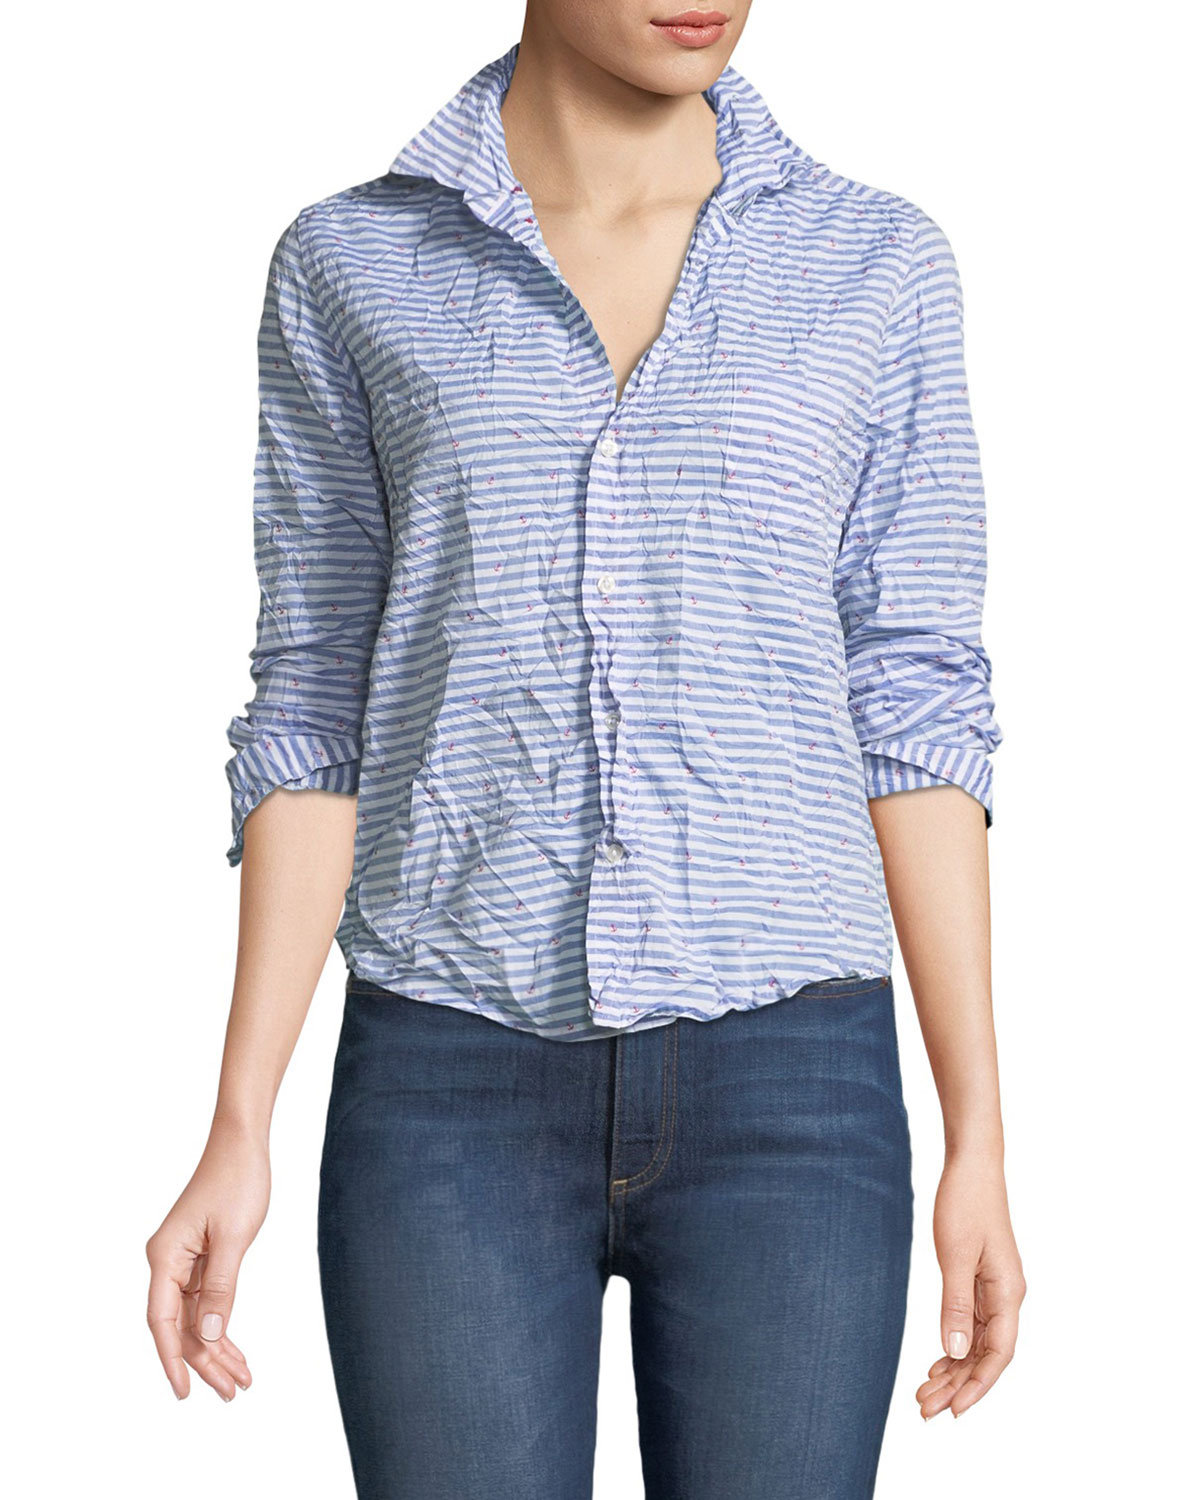 6953f449 Frank & Eileen Barry Striped Poplin Button-Down Top | Neiman Marcus